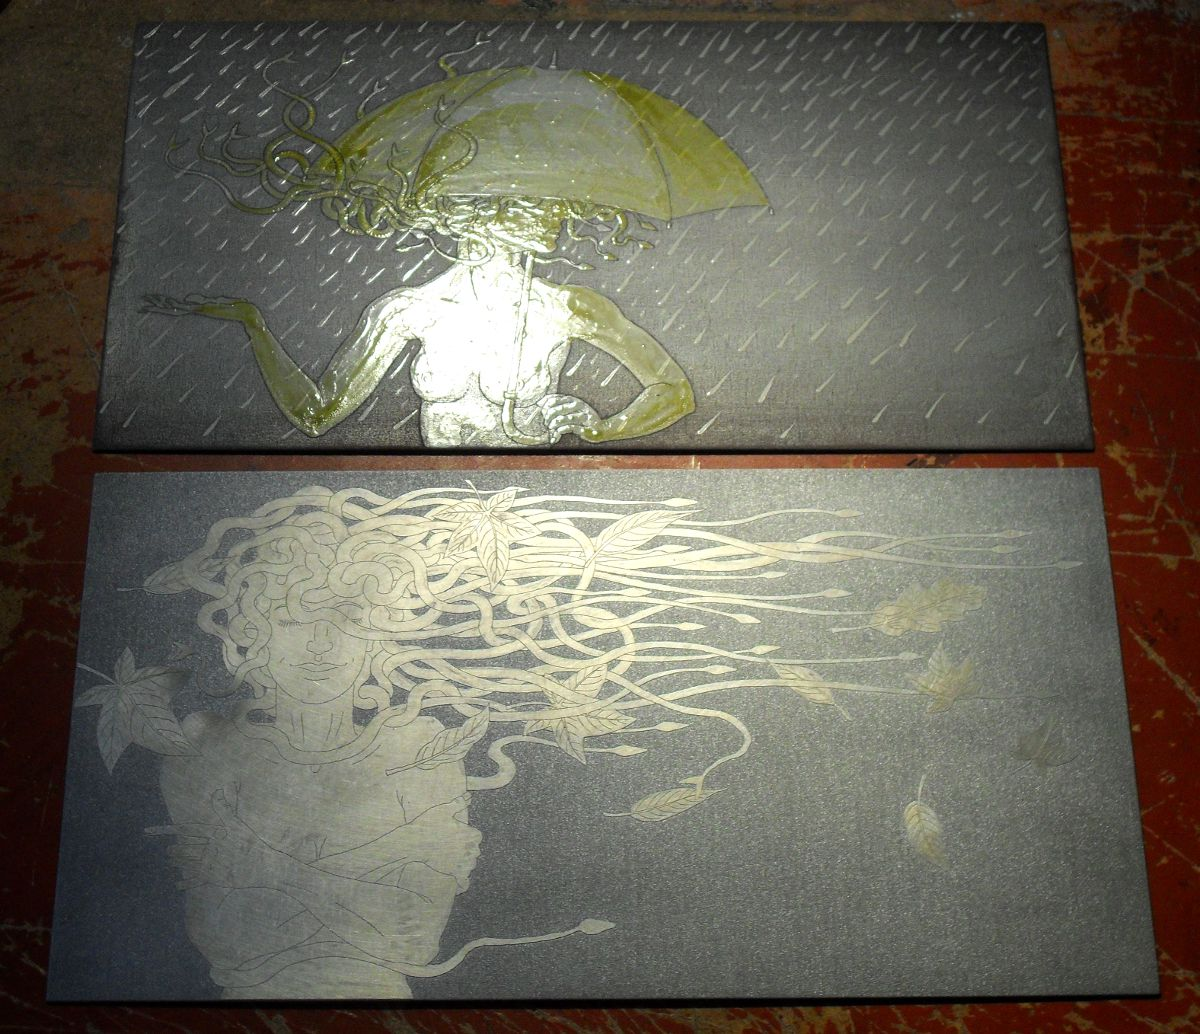 Two Medusa Plates - in reflecting light